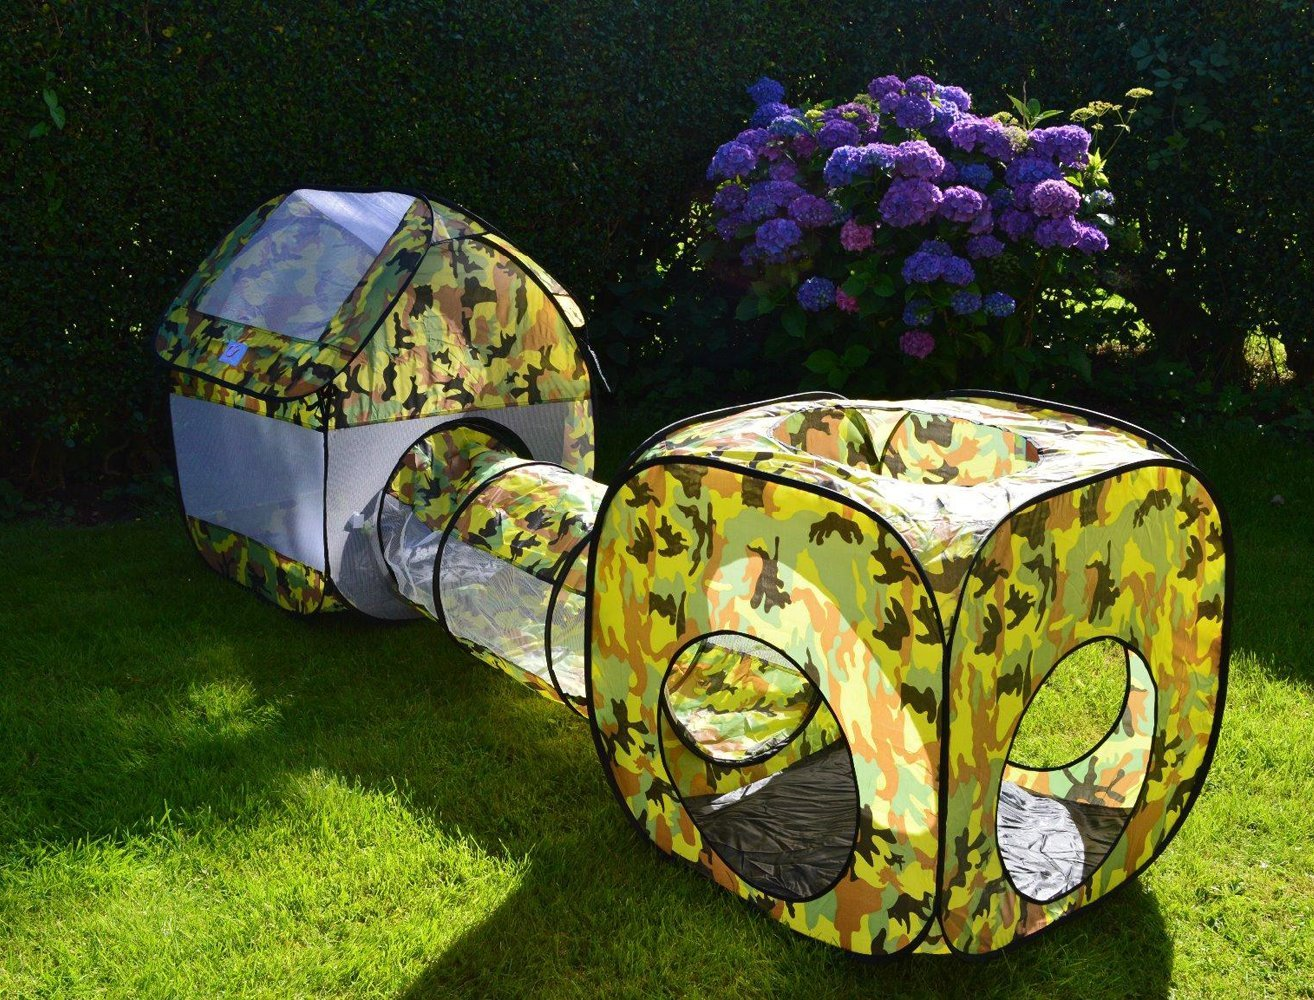 EocuSun Pop Up Kids Play Tent and Tunnel With Ball Camo - Bestter Choices Bestter Living & EocuSun Pop Up Kids Play Tent and Tunnel With Ball Camo - Bestter ...